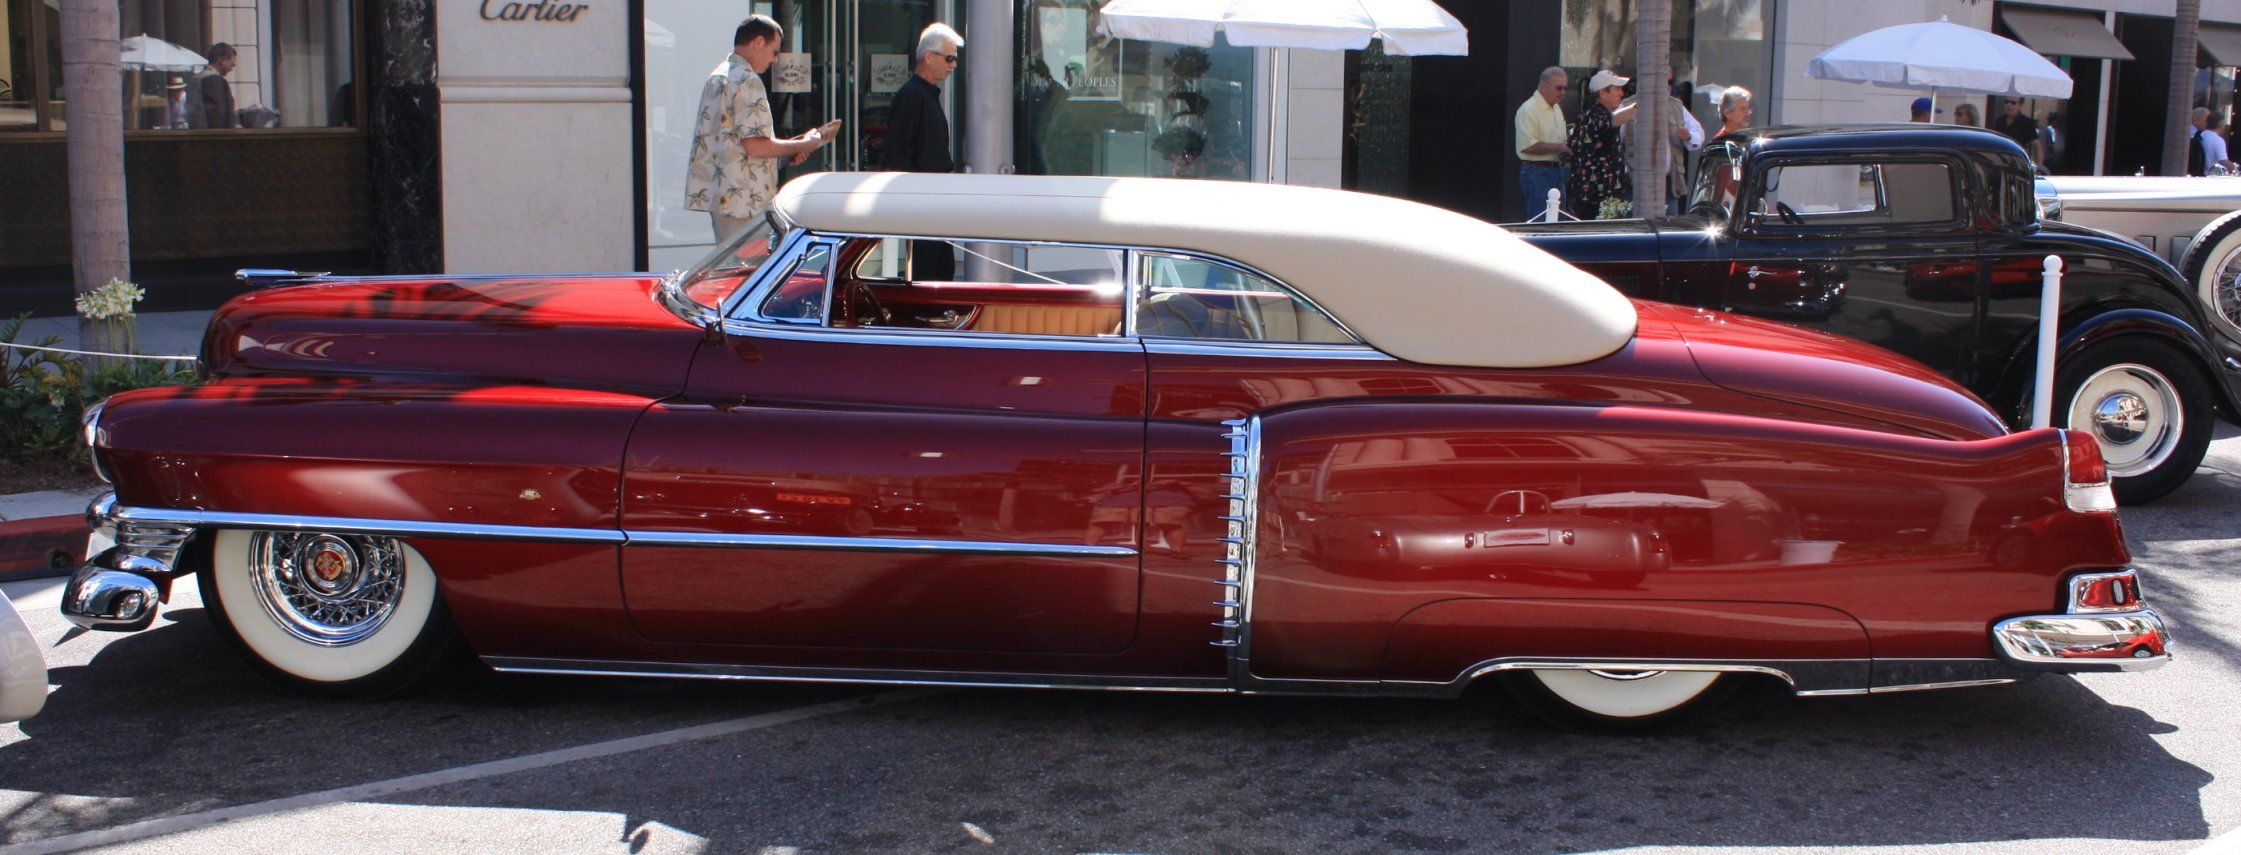 Power Cars Cadillac Series 62 Convertible Quot The Golden